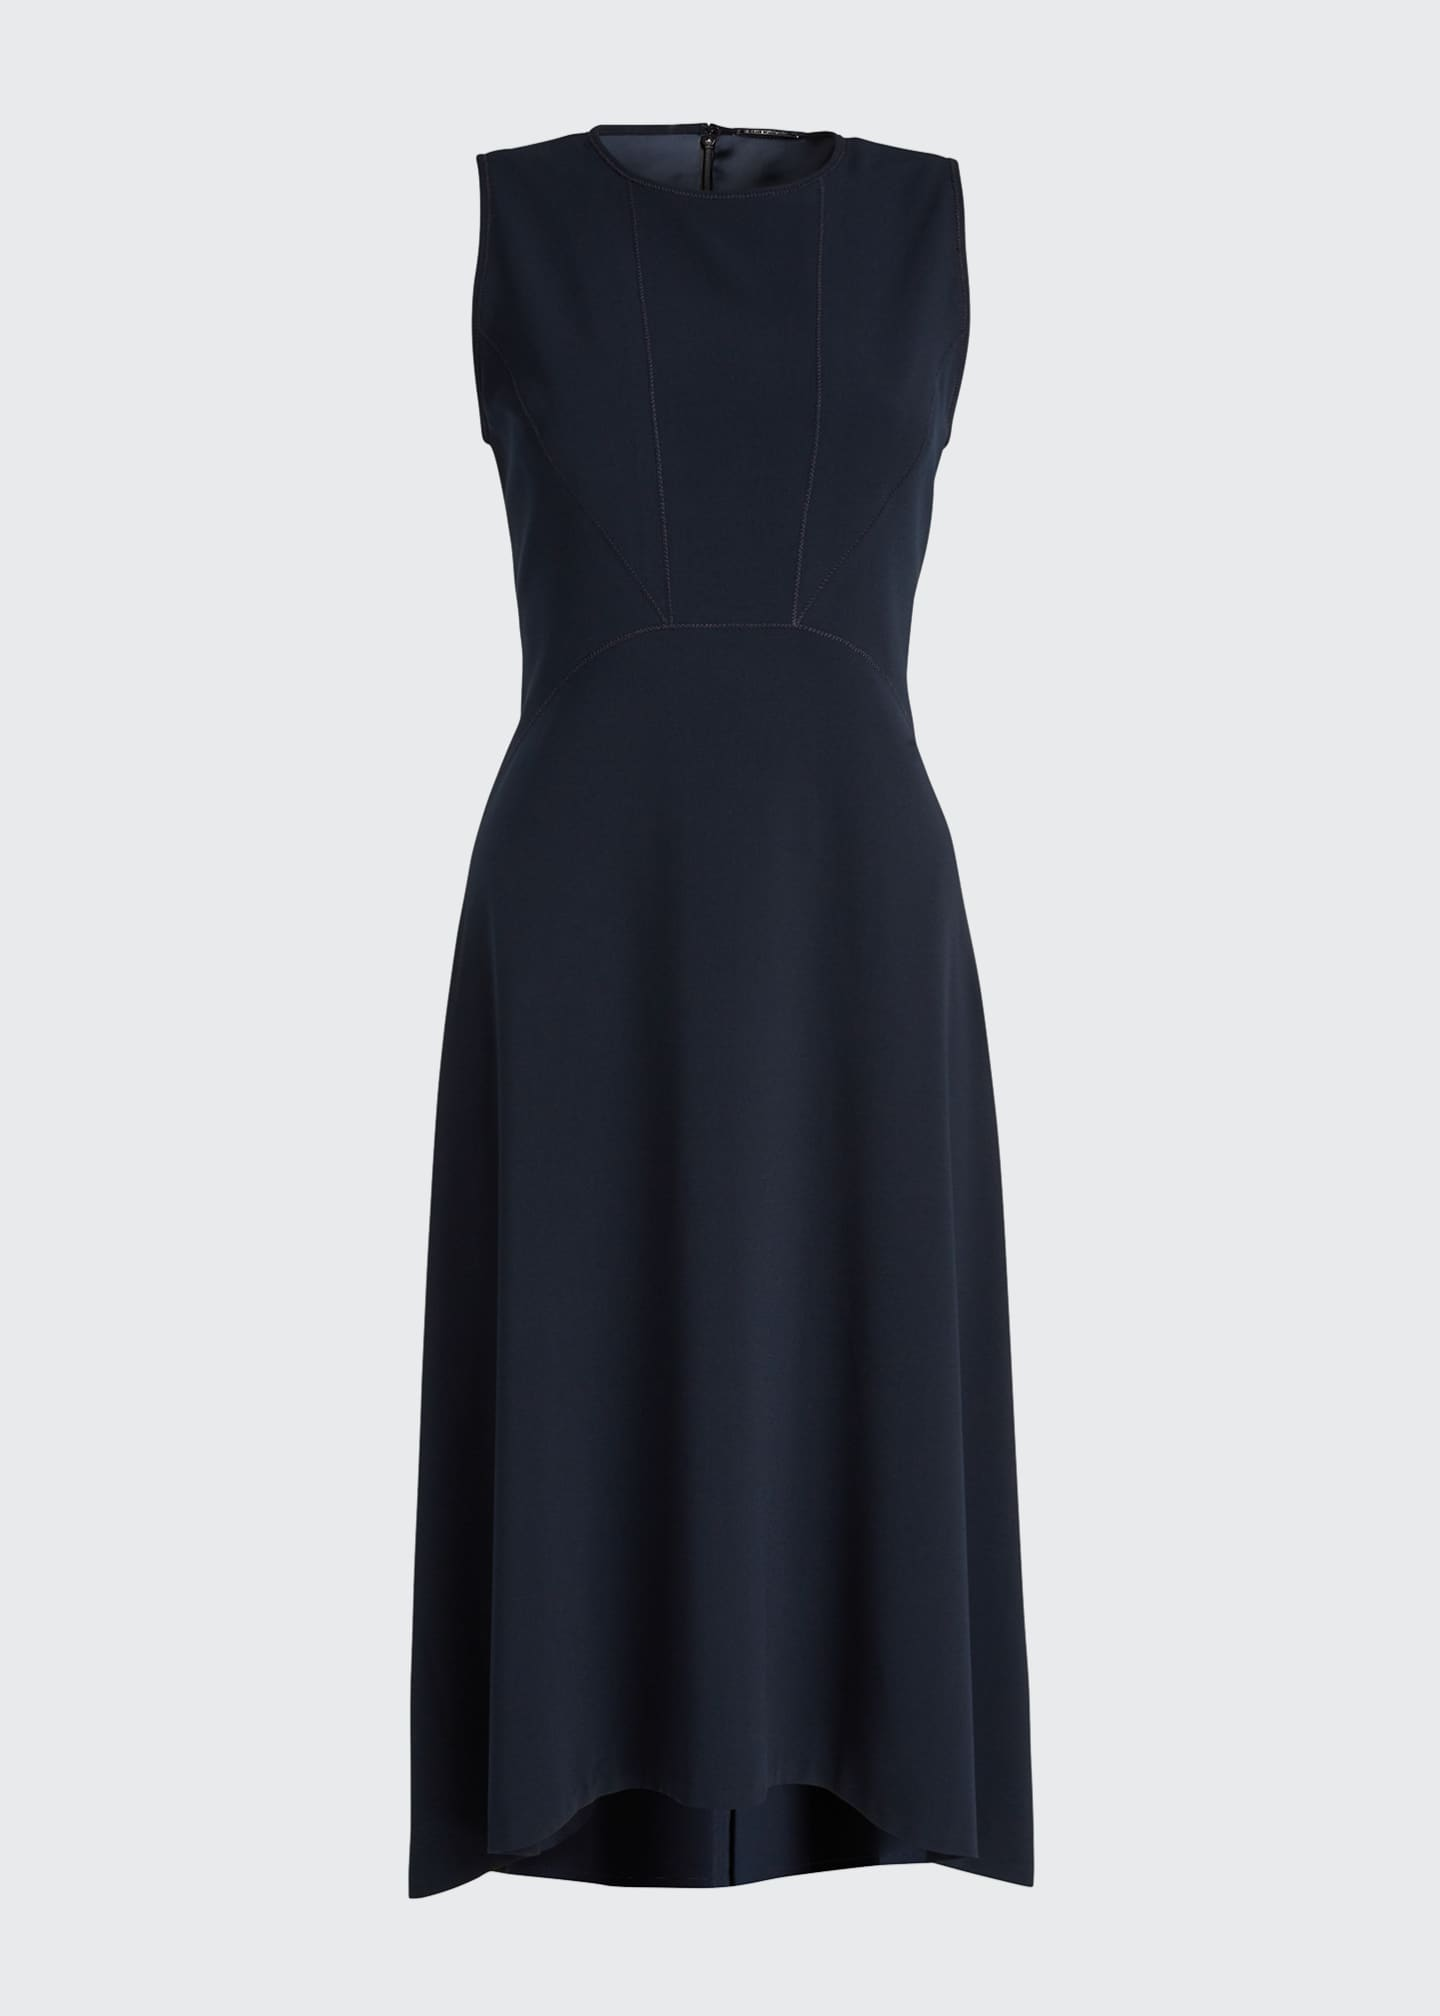 Image 5 of 5: Leighton Sleeveless High-Low Crepe Dress